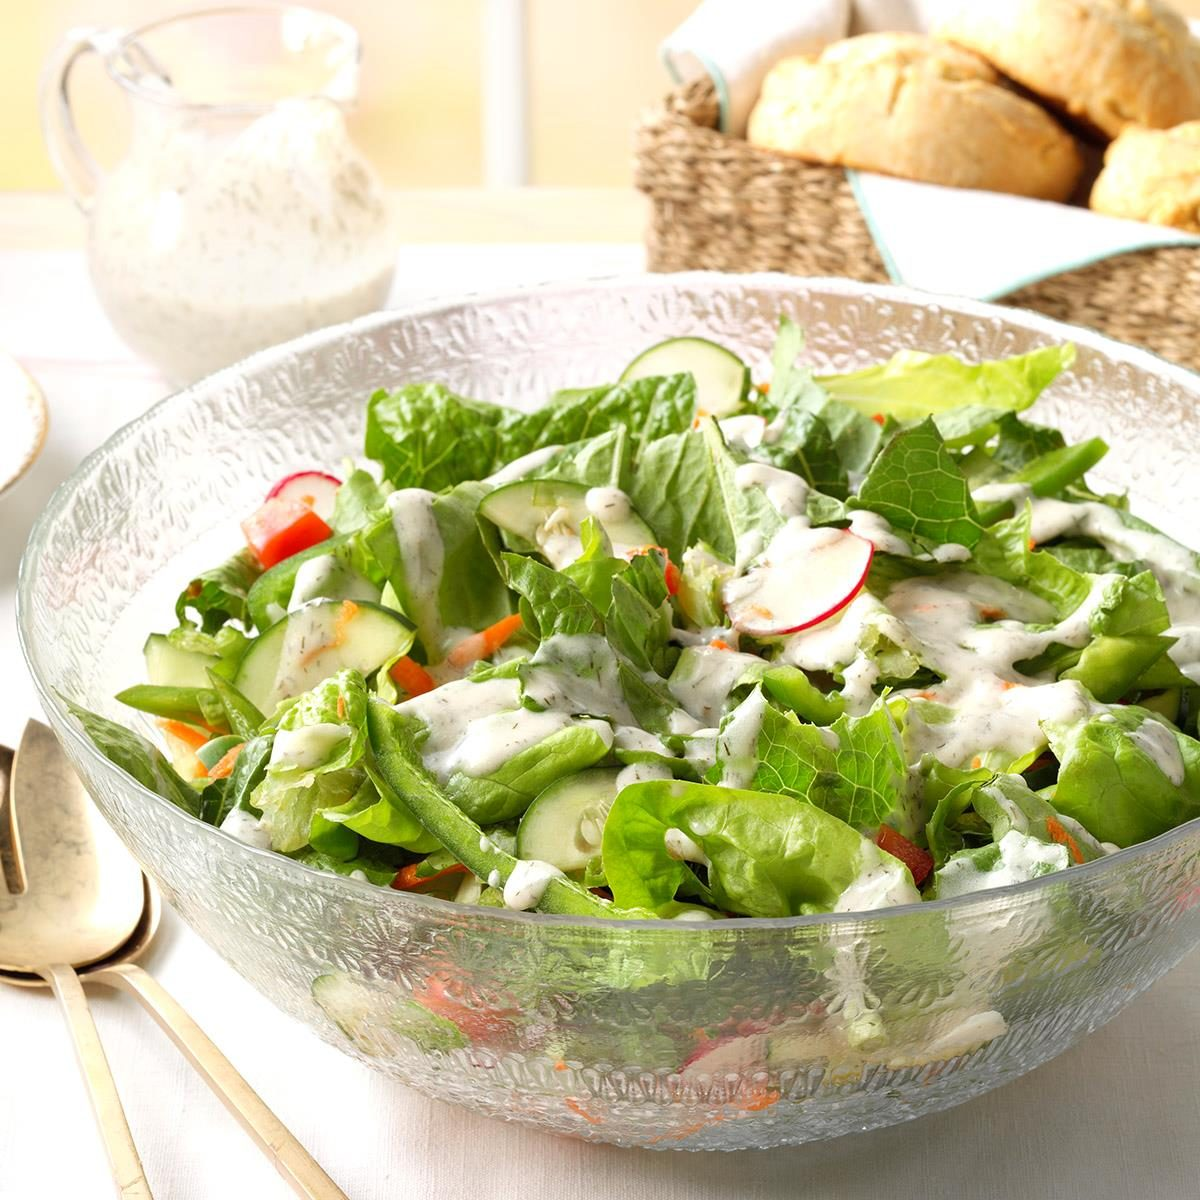 Green Salad With Dill Dressing Recipe How To Make It Taste Of Home